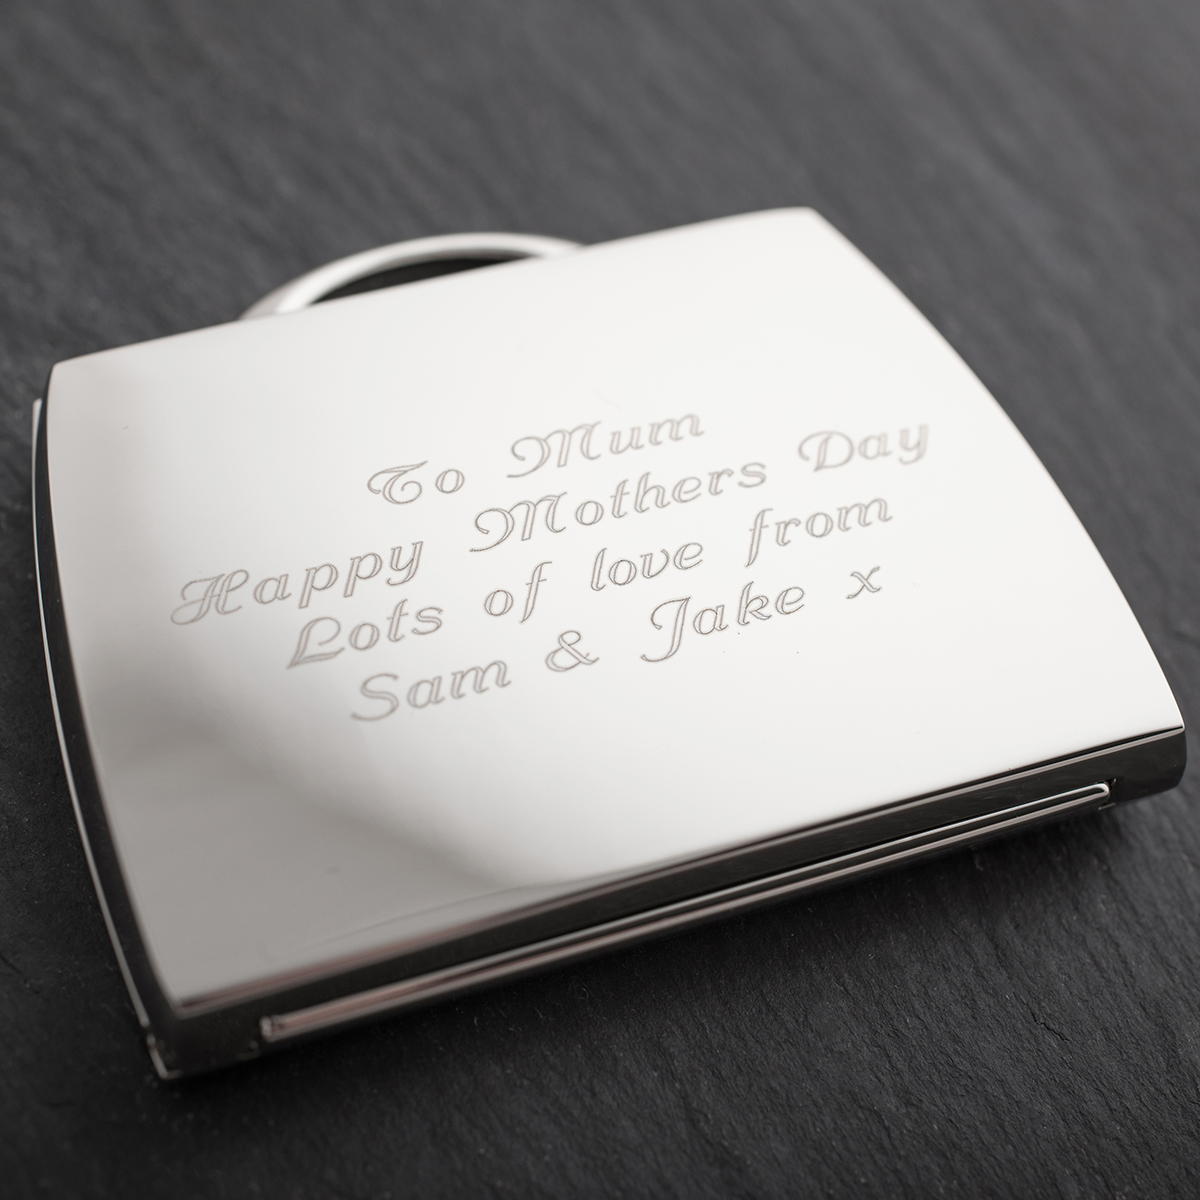 Engraved Handbag Compact Mirror